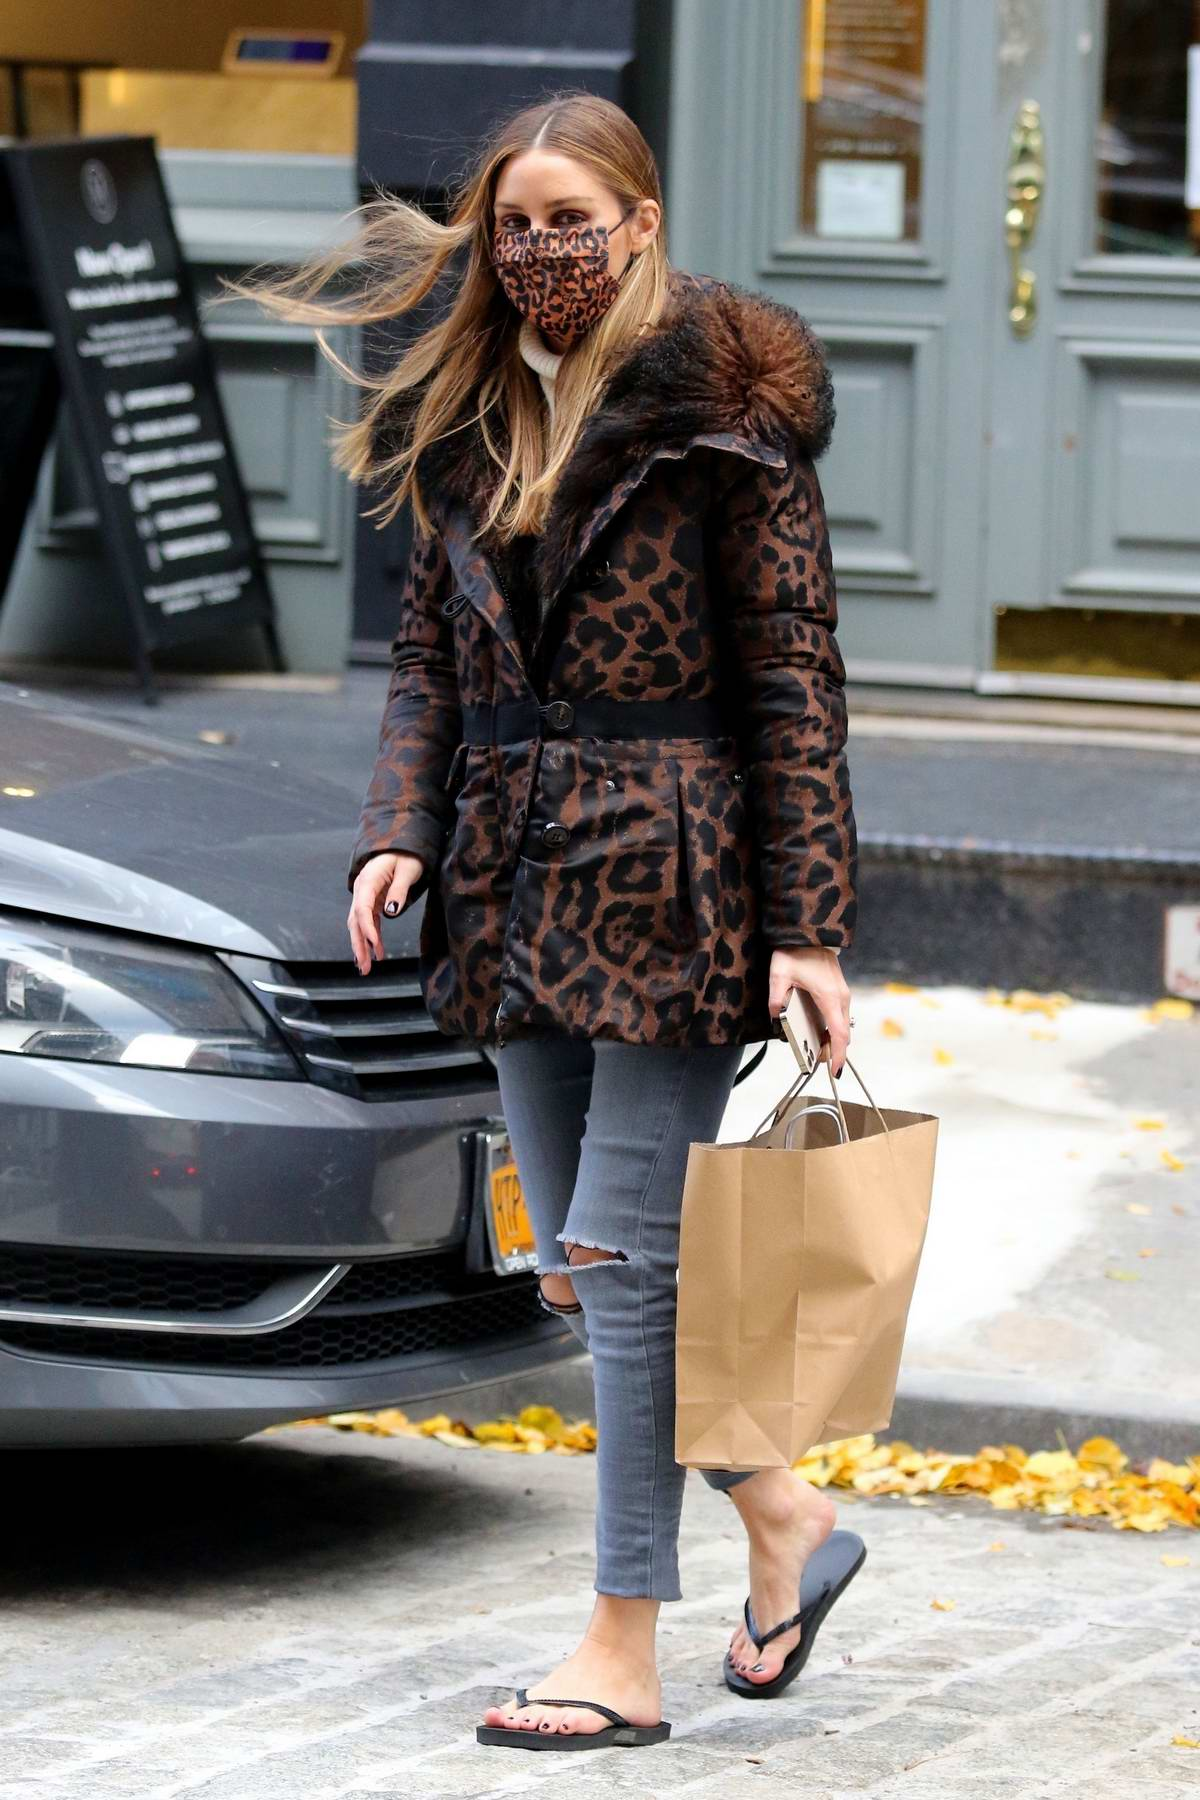 Olivia Palermo puts on a stylish display in an animal print jacket as she steps out for a pedicure on a windy day in New York City